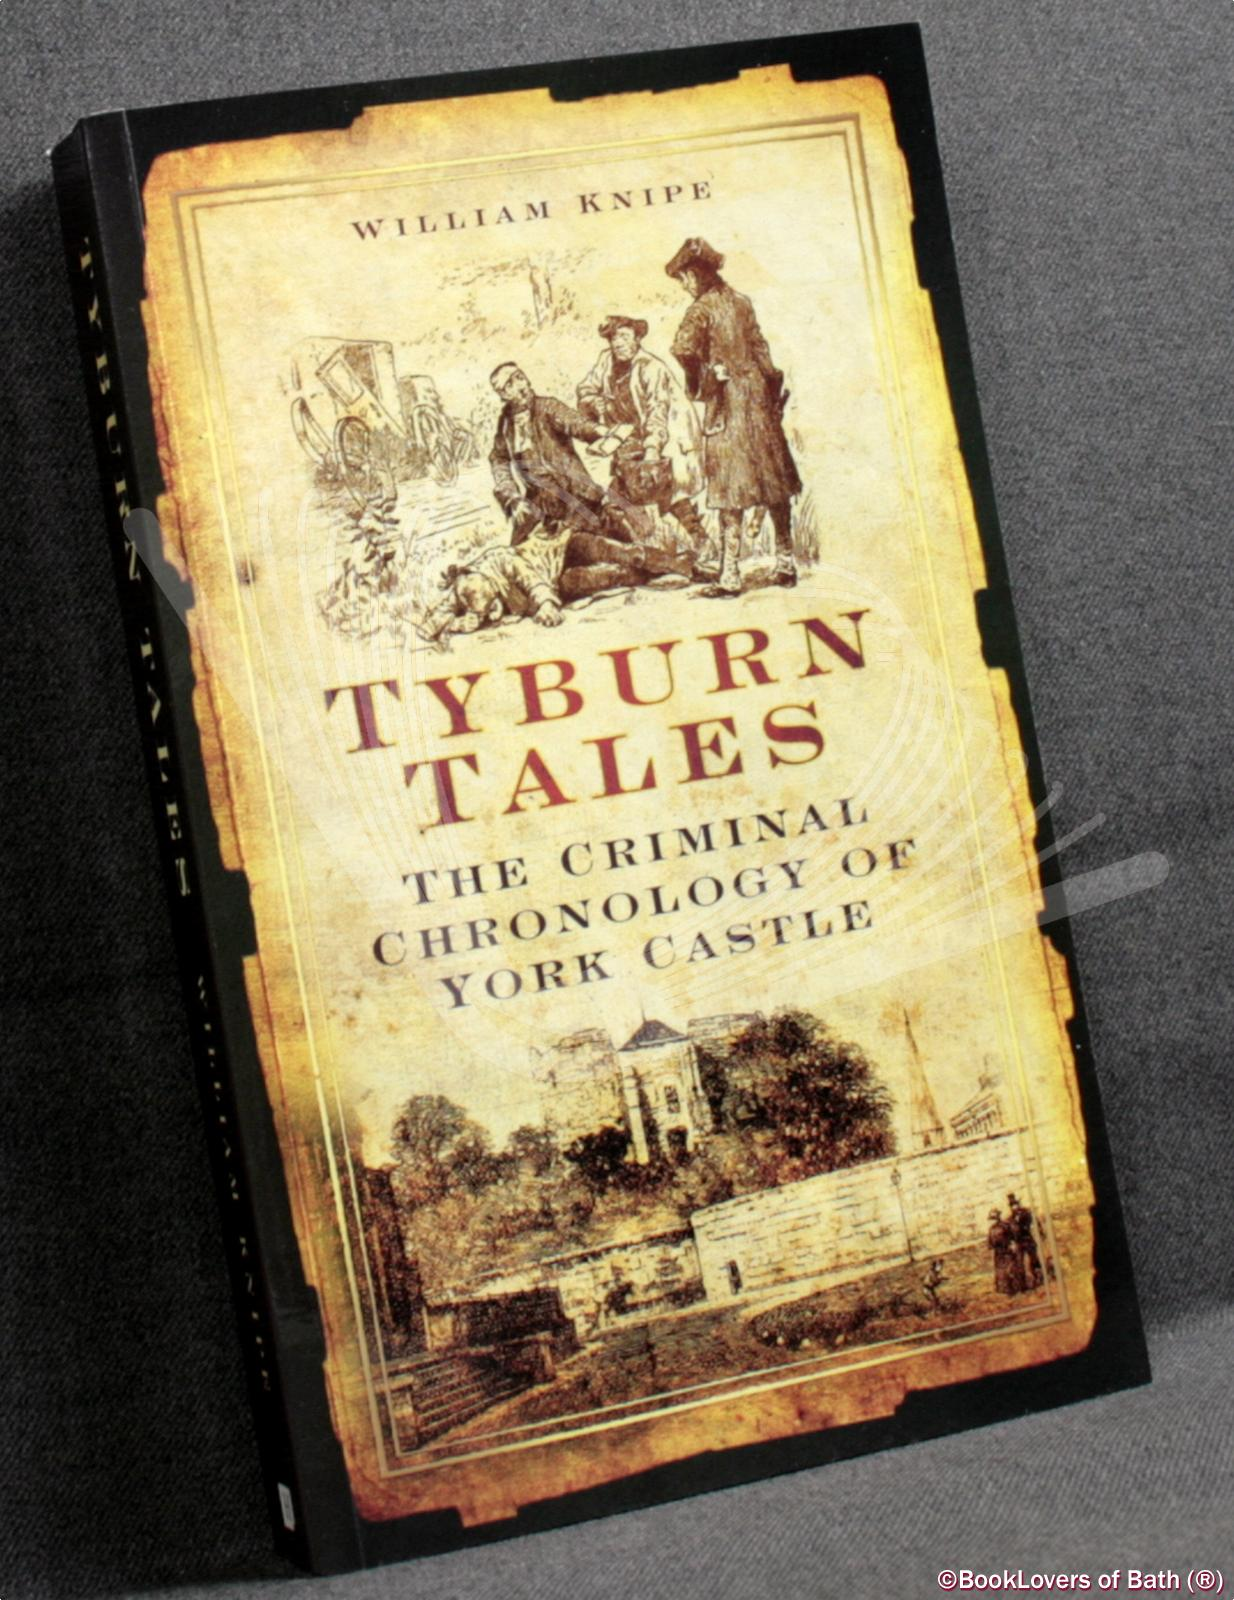 Tyburn Tales: The Criminal Chronology of York Castle - William Knipe